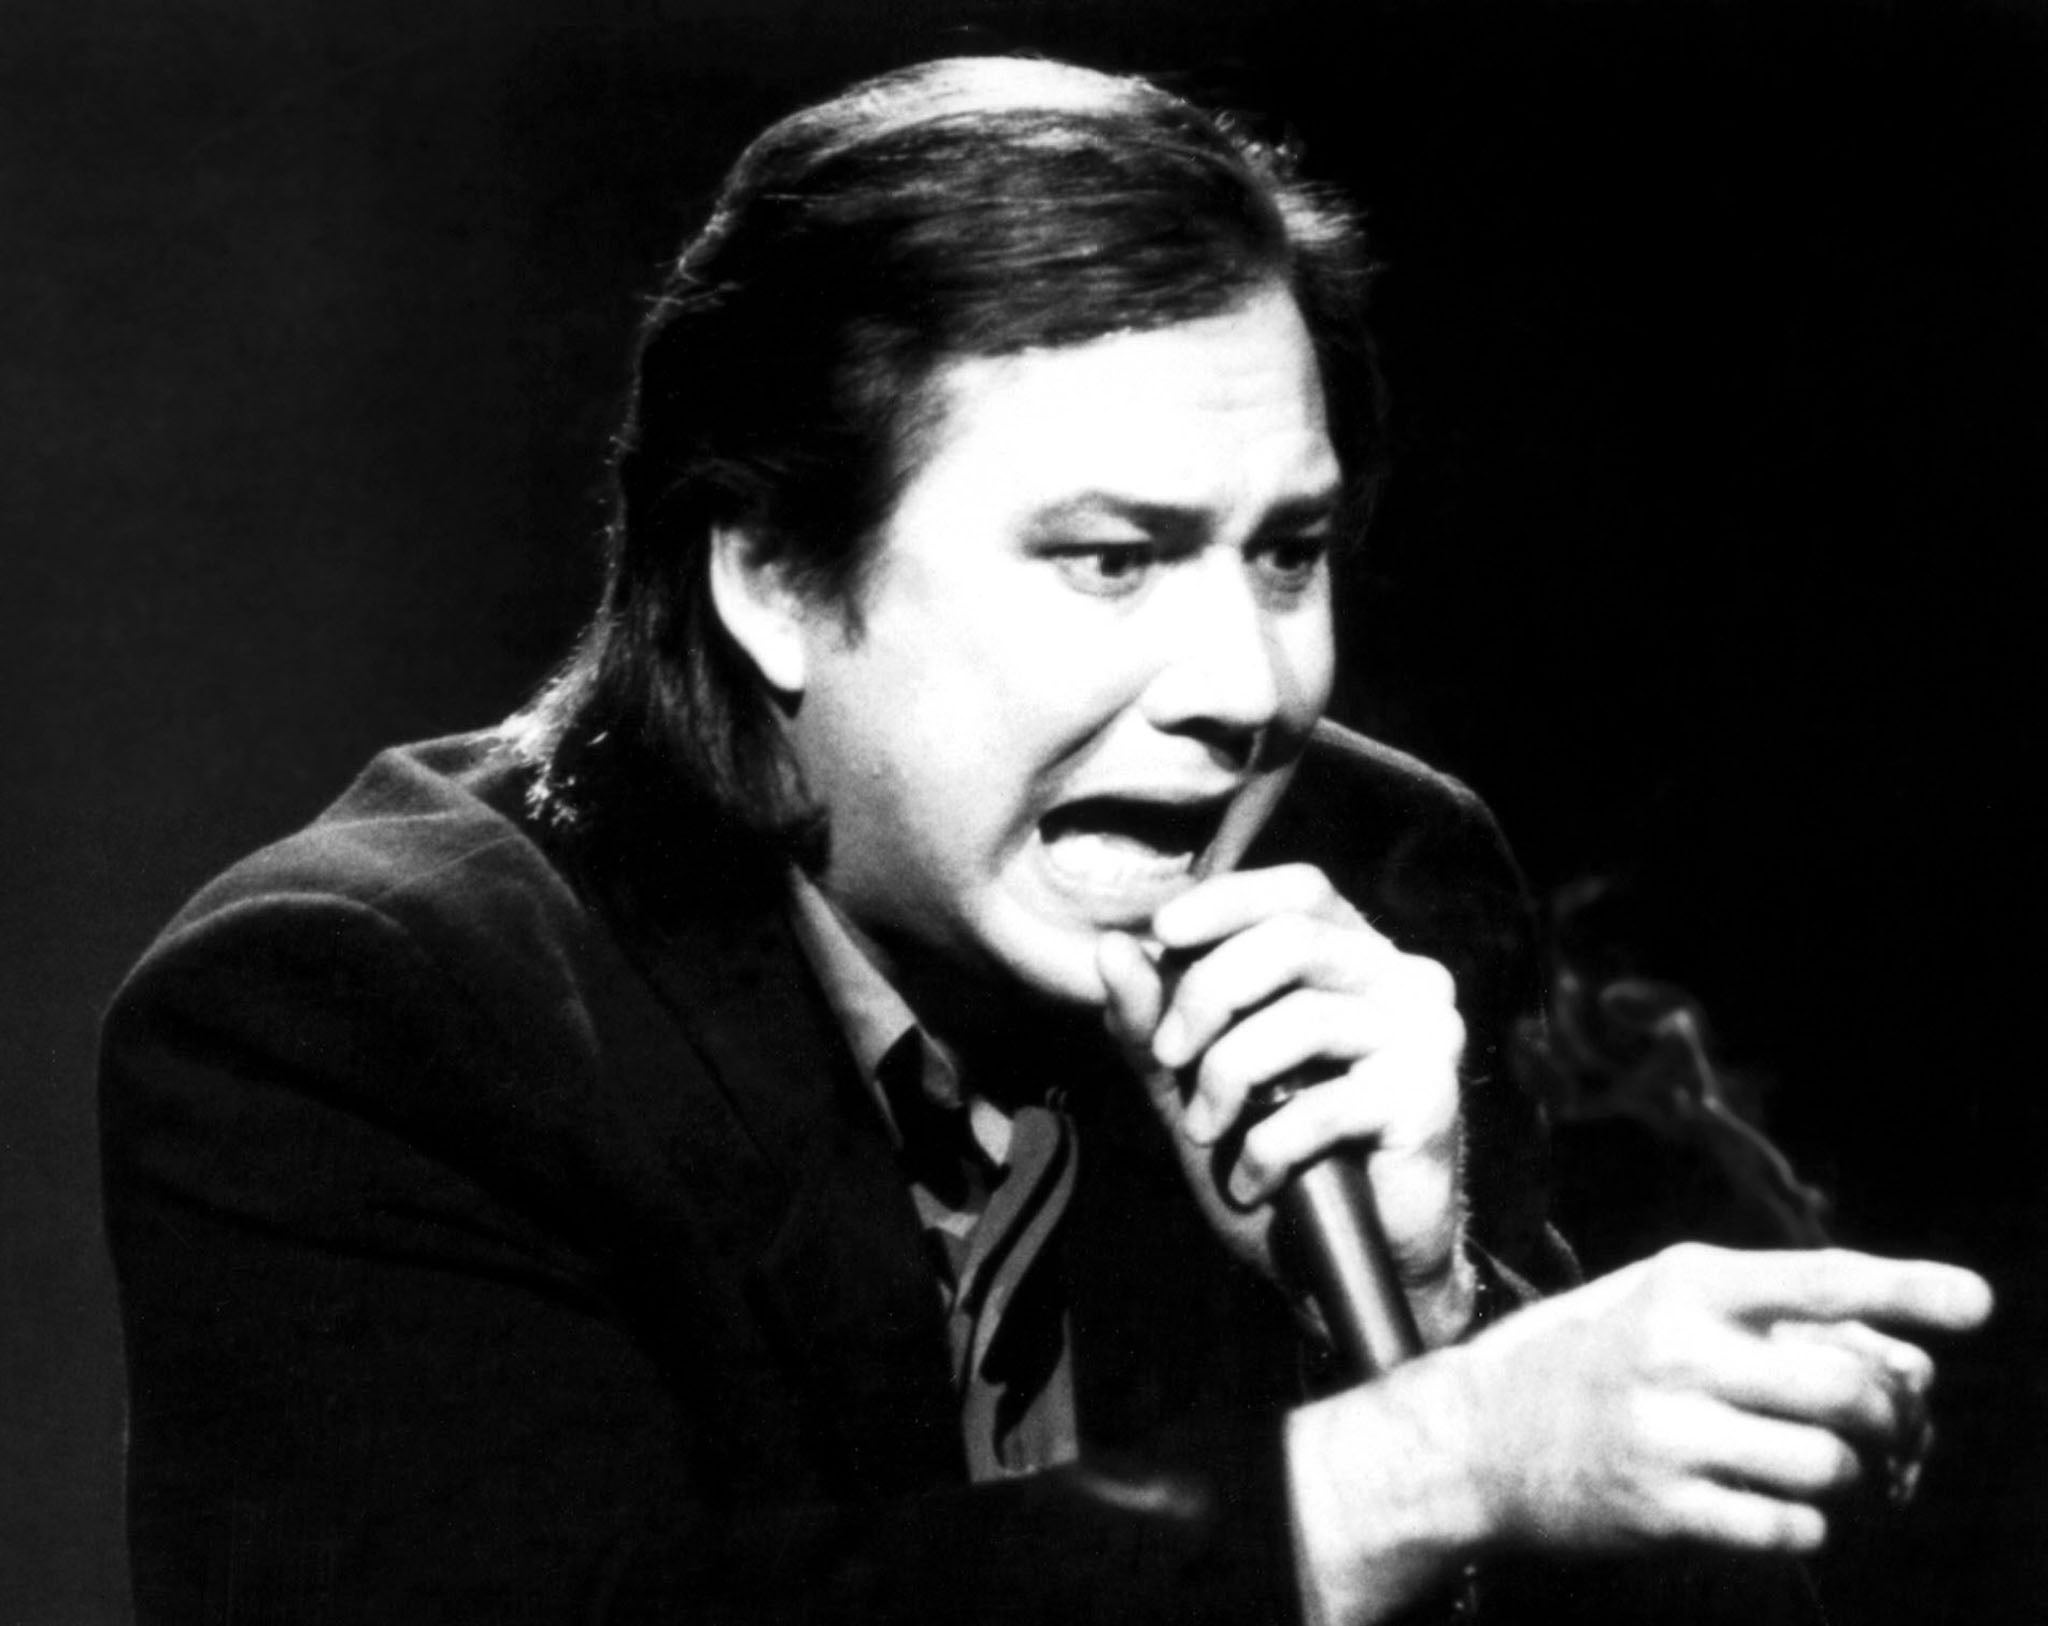 Bill Hicks quotes: 10 classic jokes 20 years on 'It's always